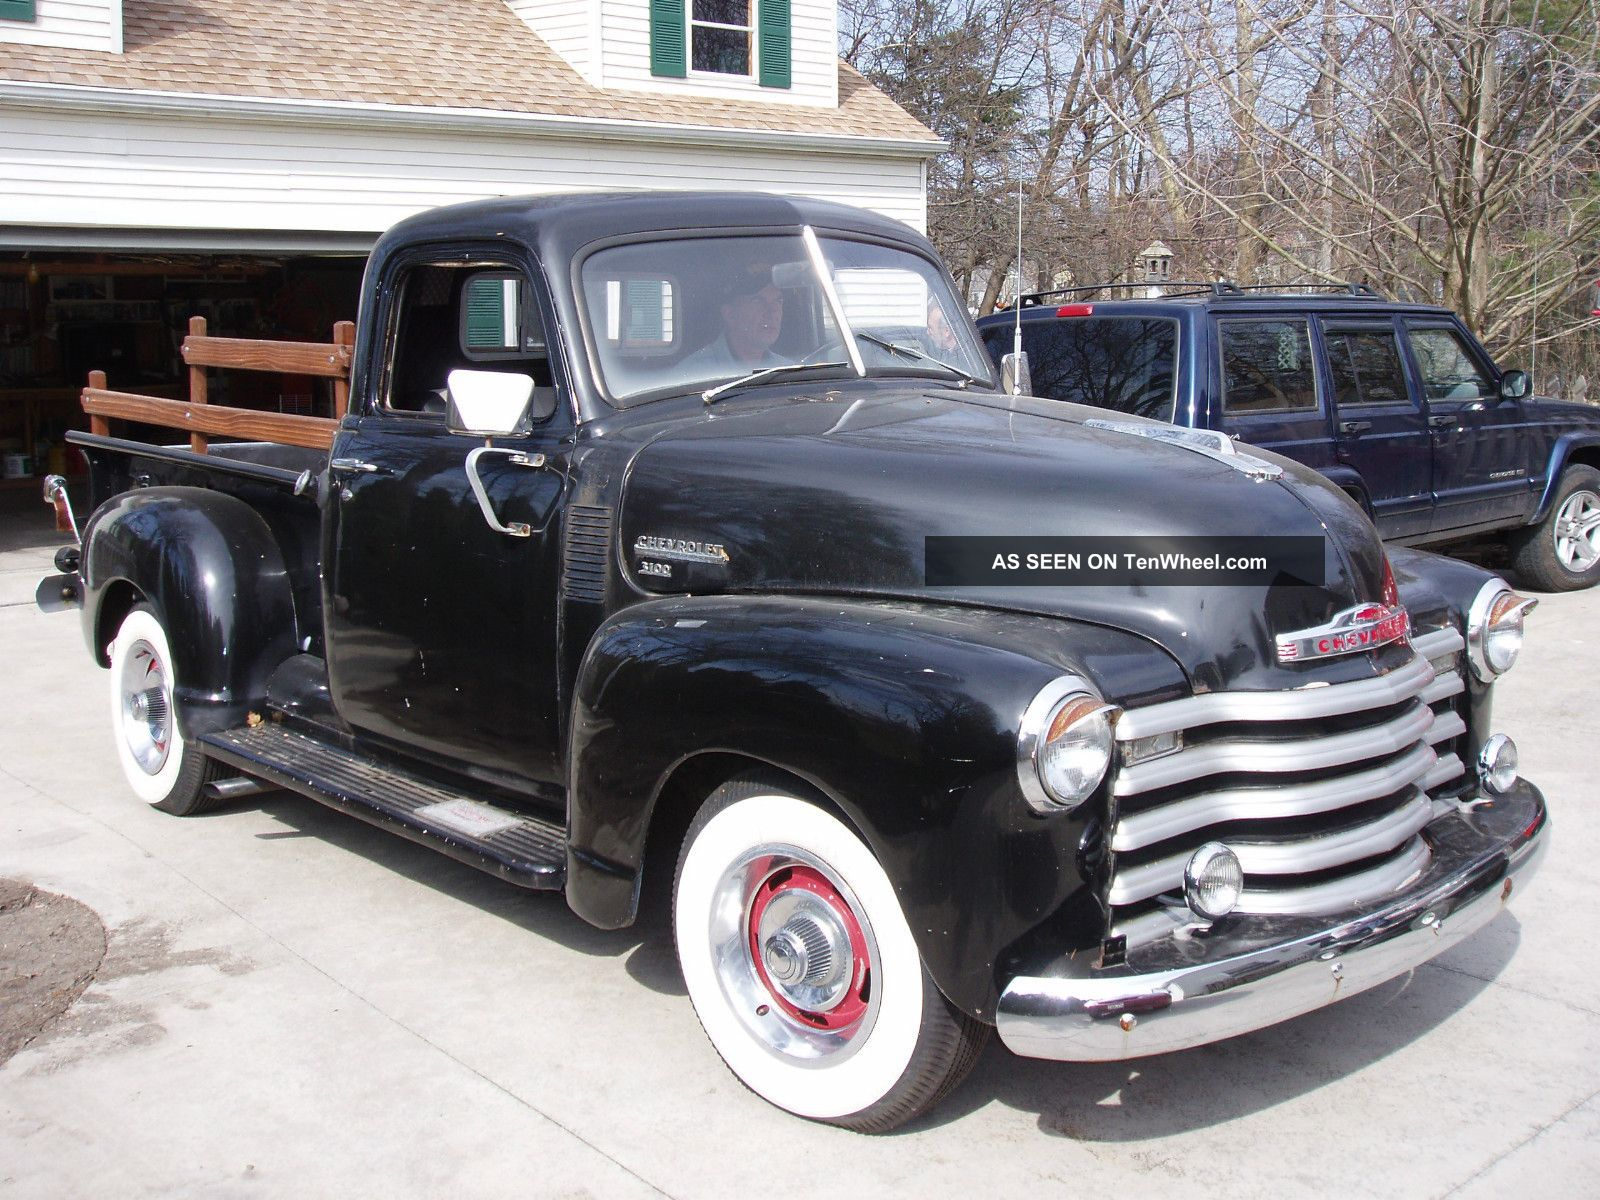 1948 chevy c3100 pickup truck 350 engine 350 auto trans for 350 chevy truck motor